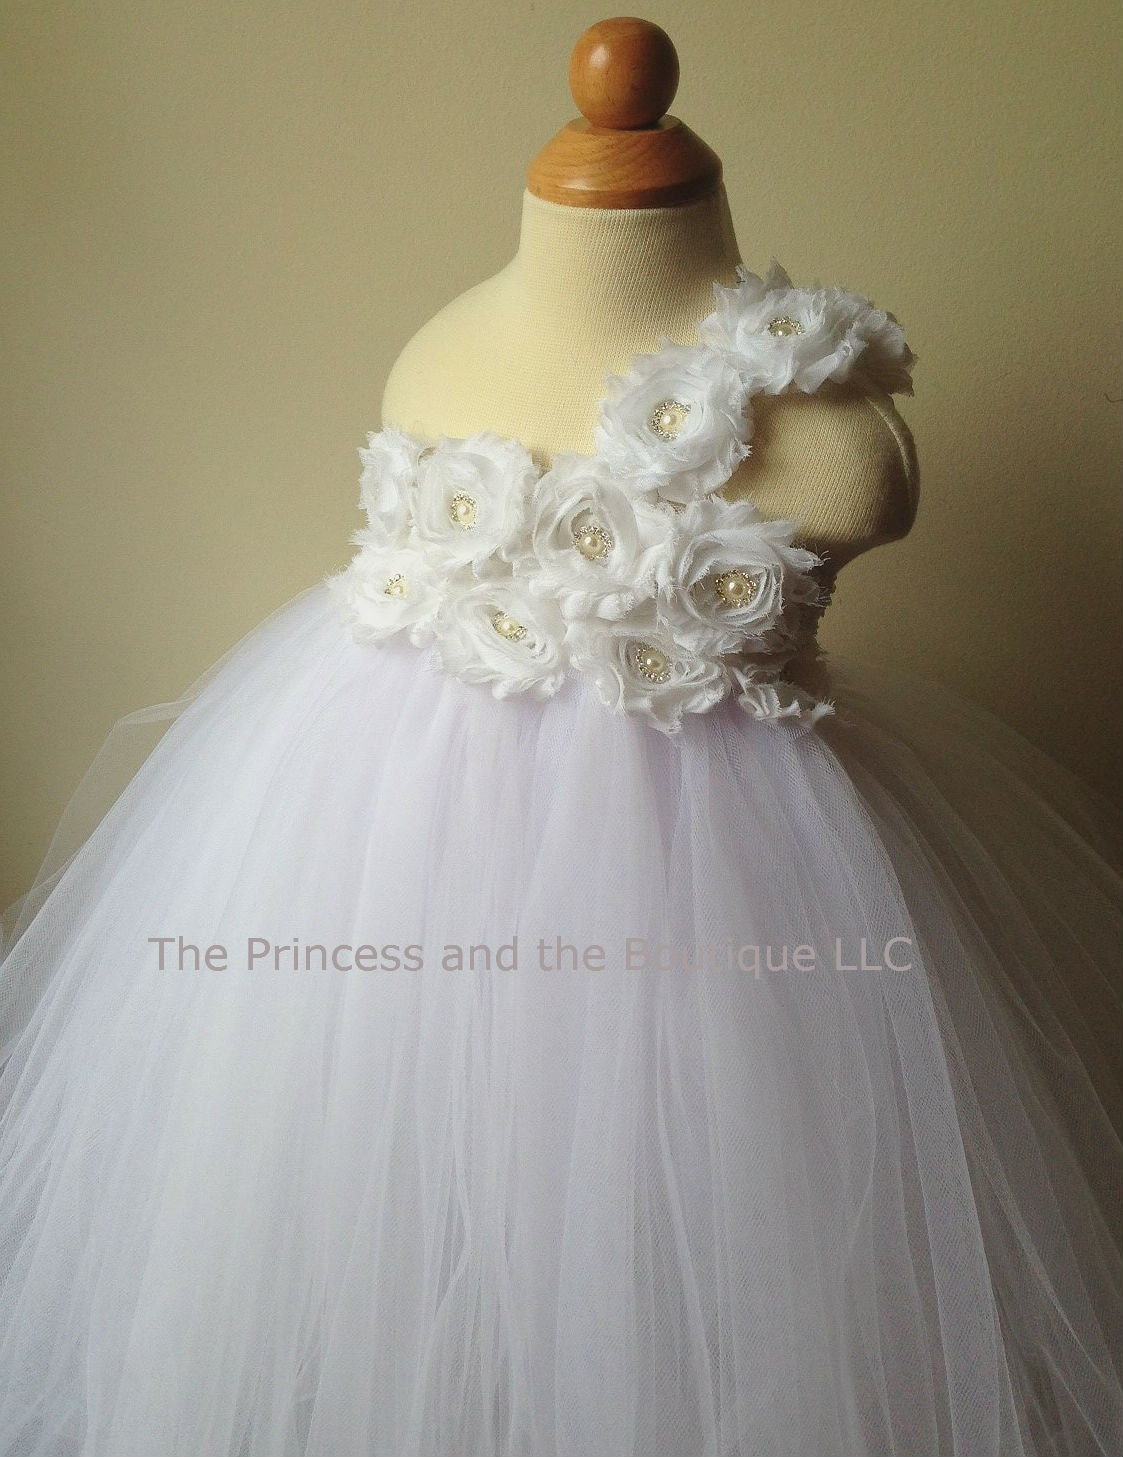 White flower girl dress with white chiffon by Theprincessandthebou